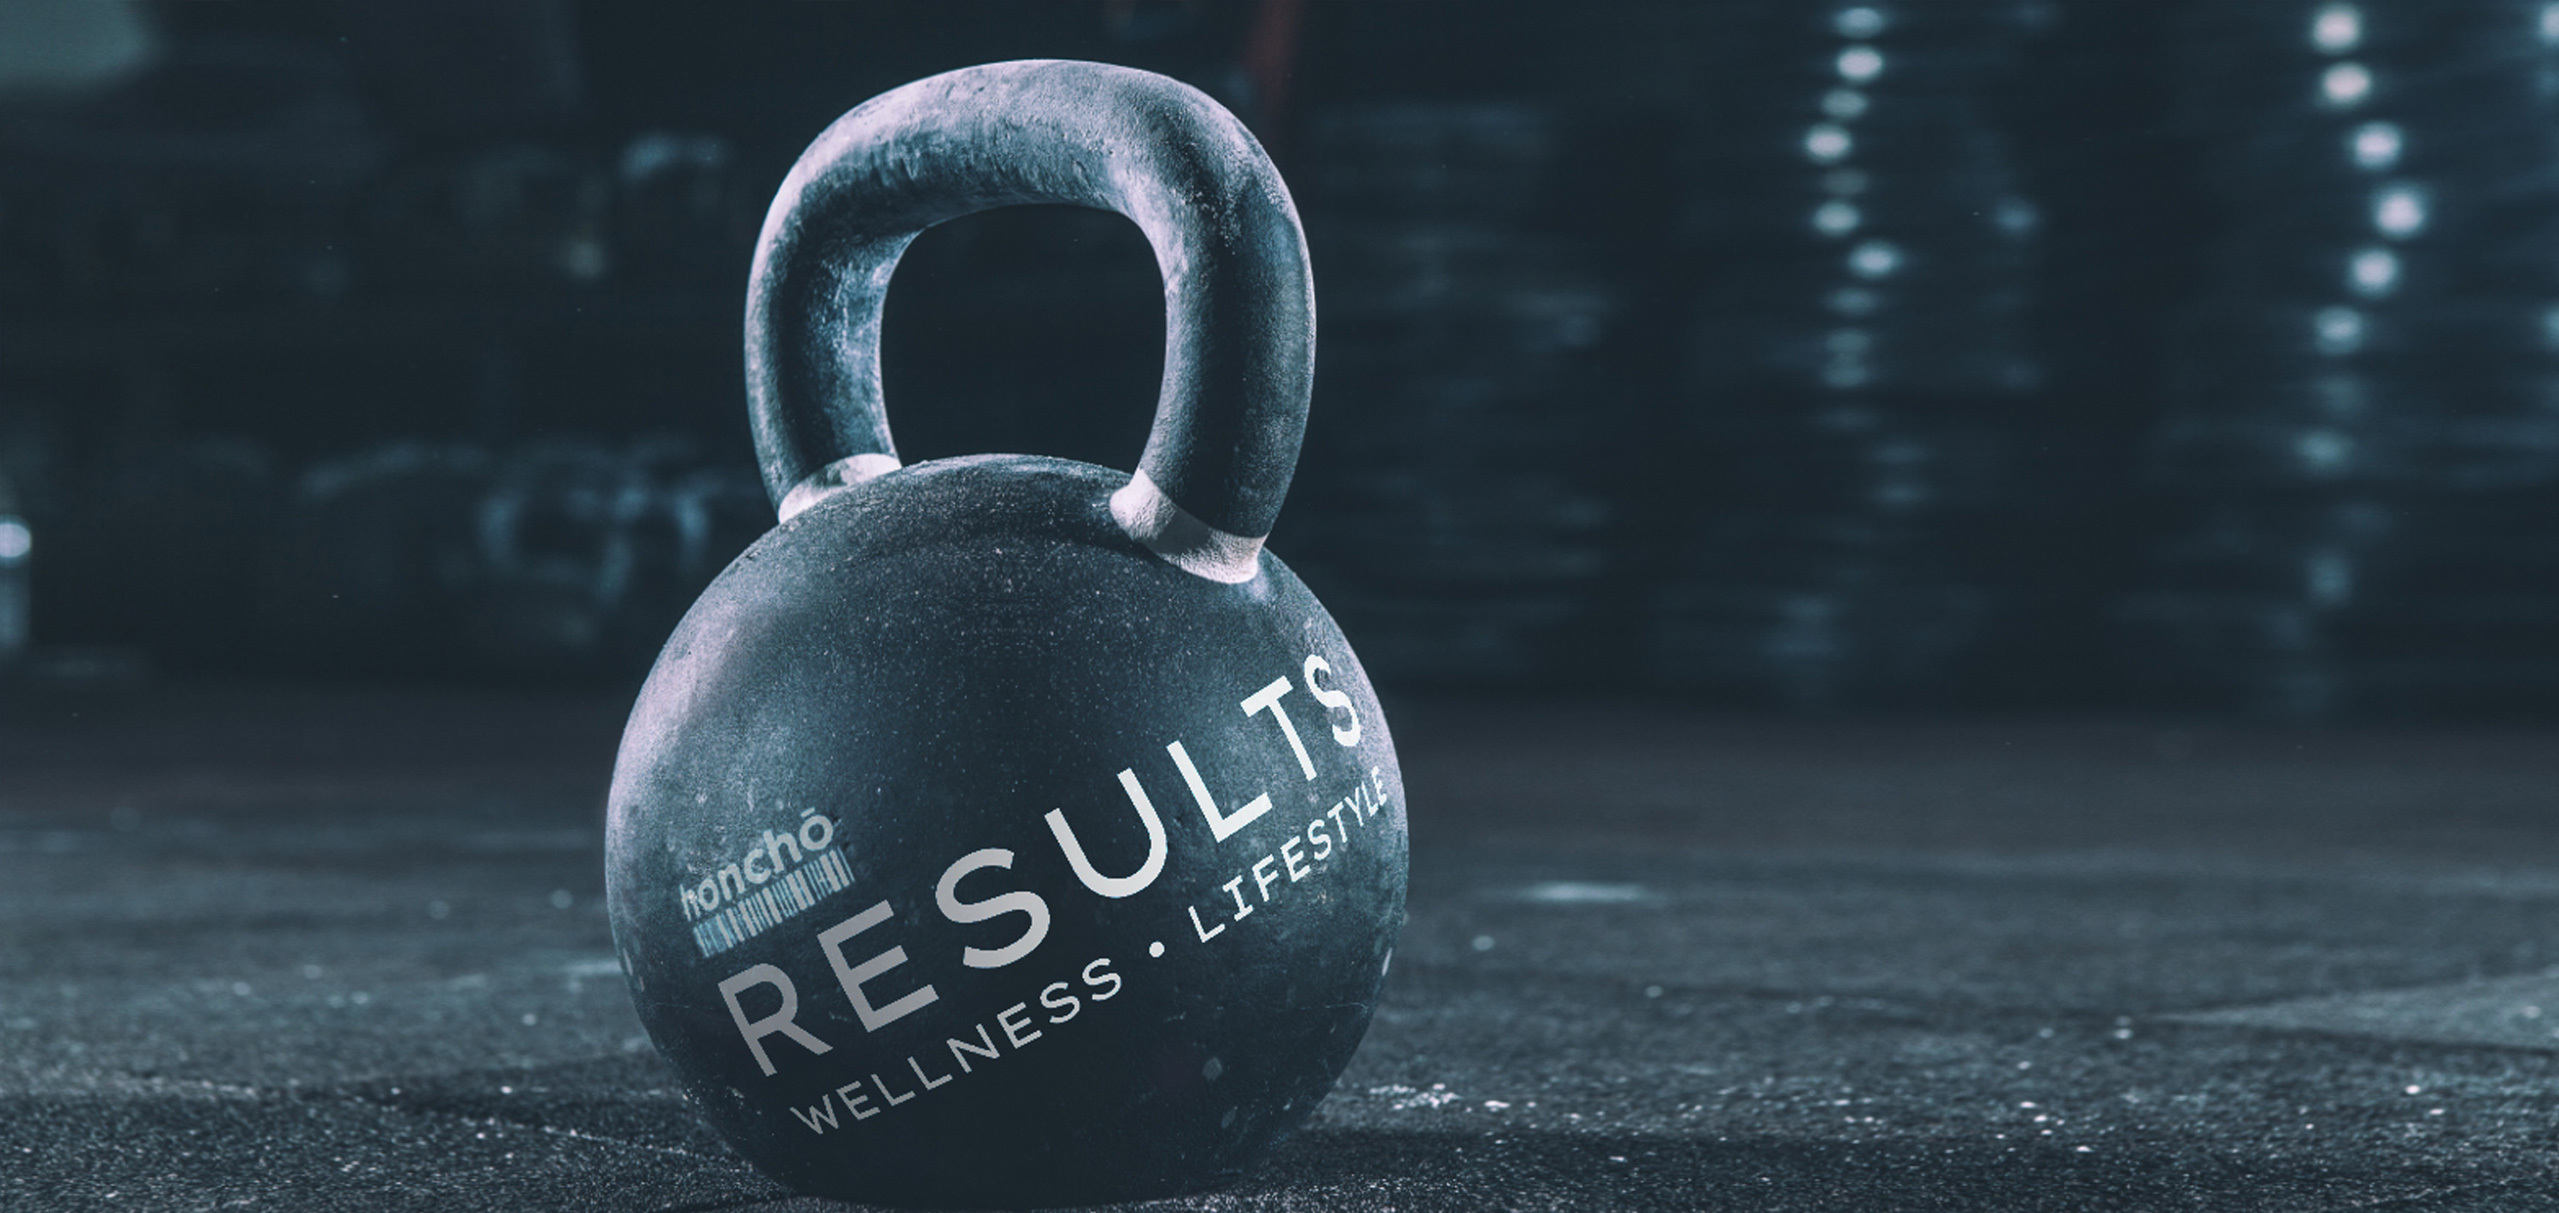 It's official: we're working with Results Wellness Lifestyle!